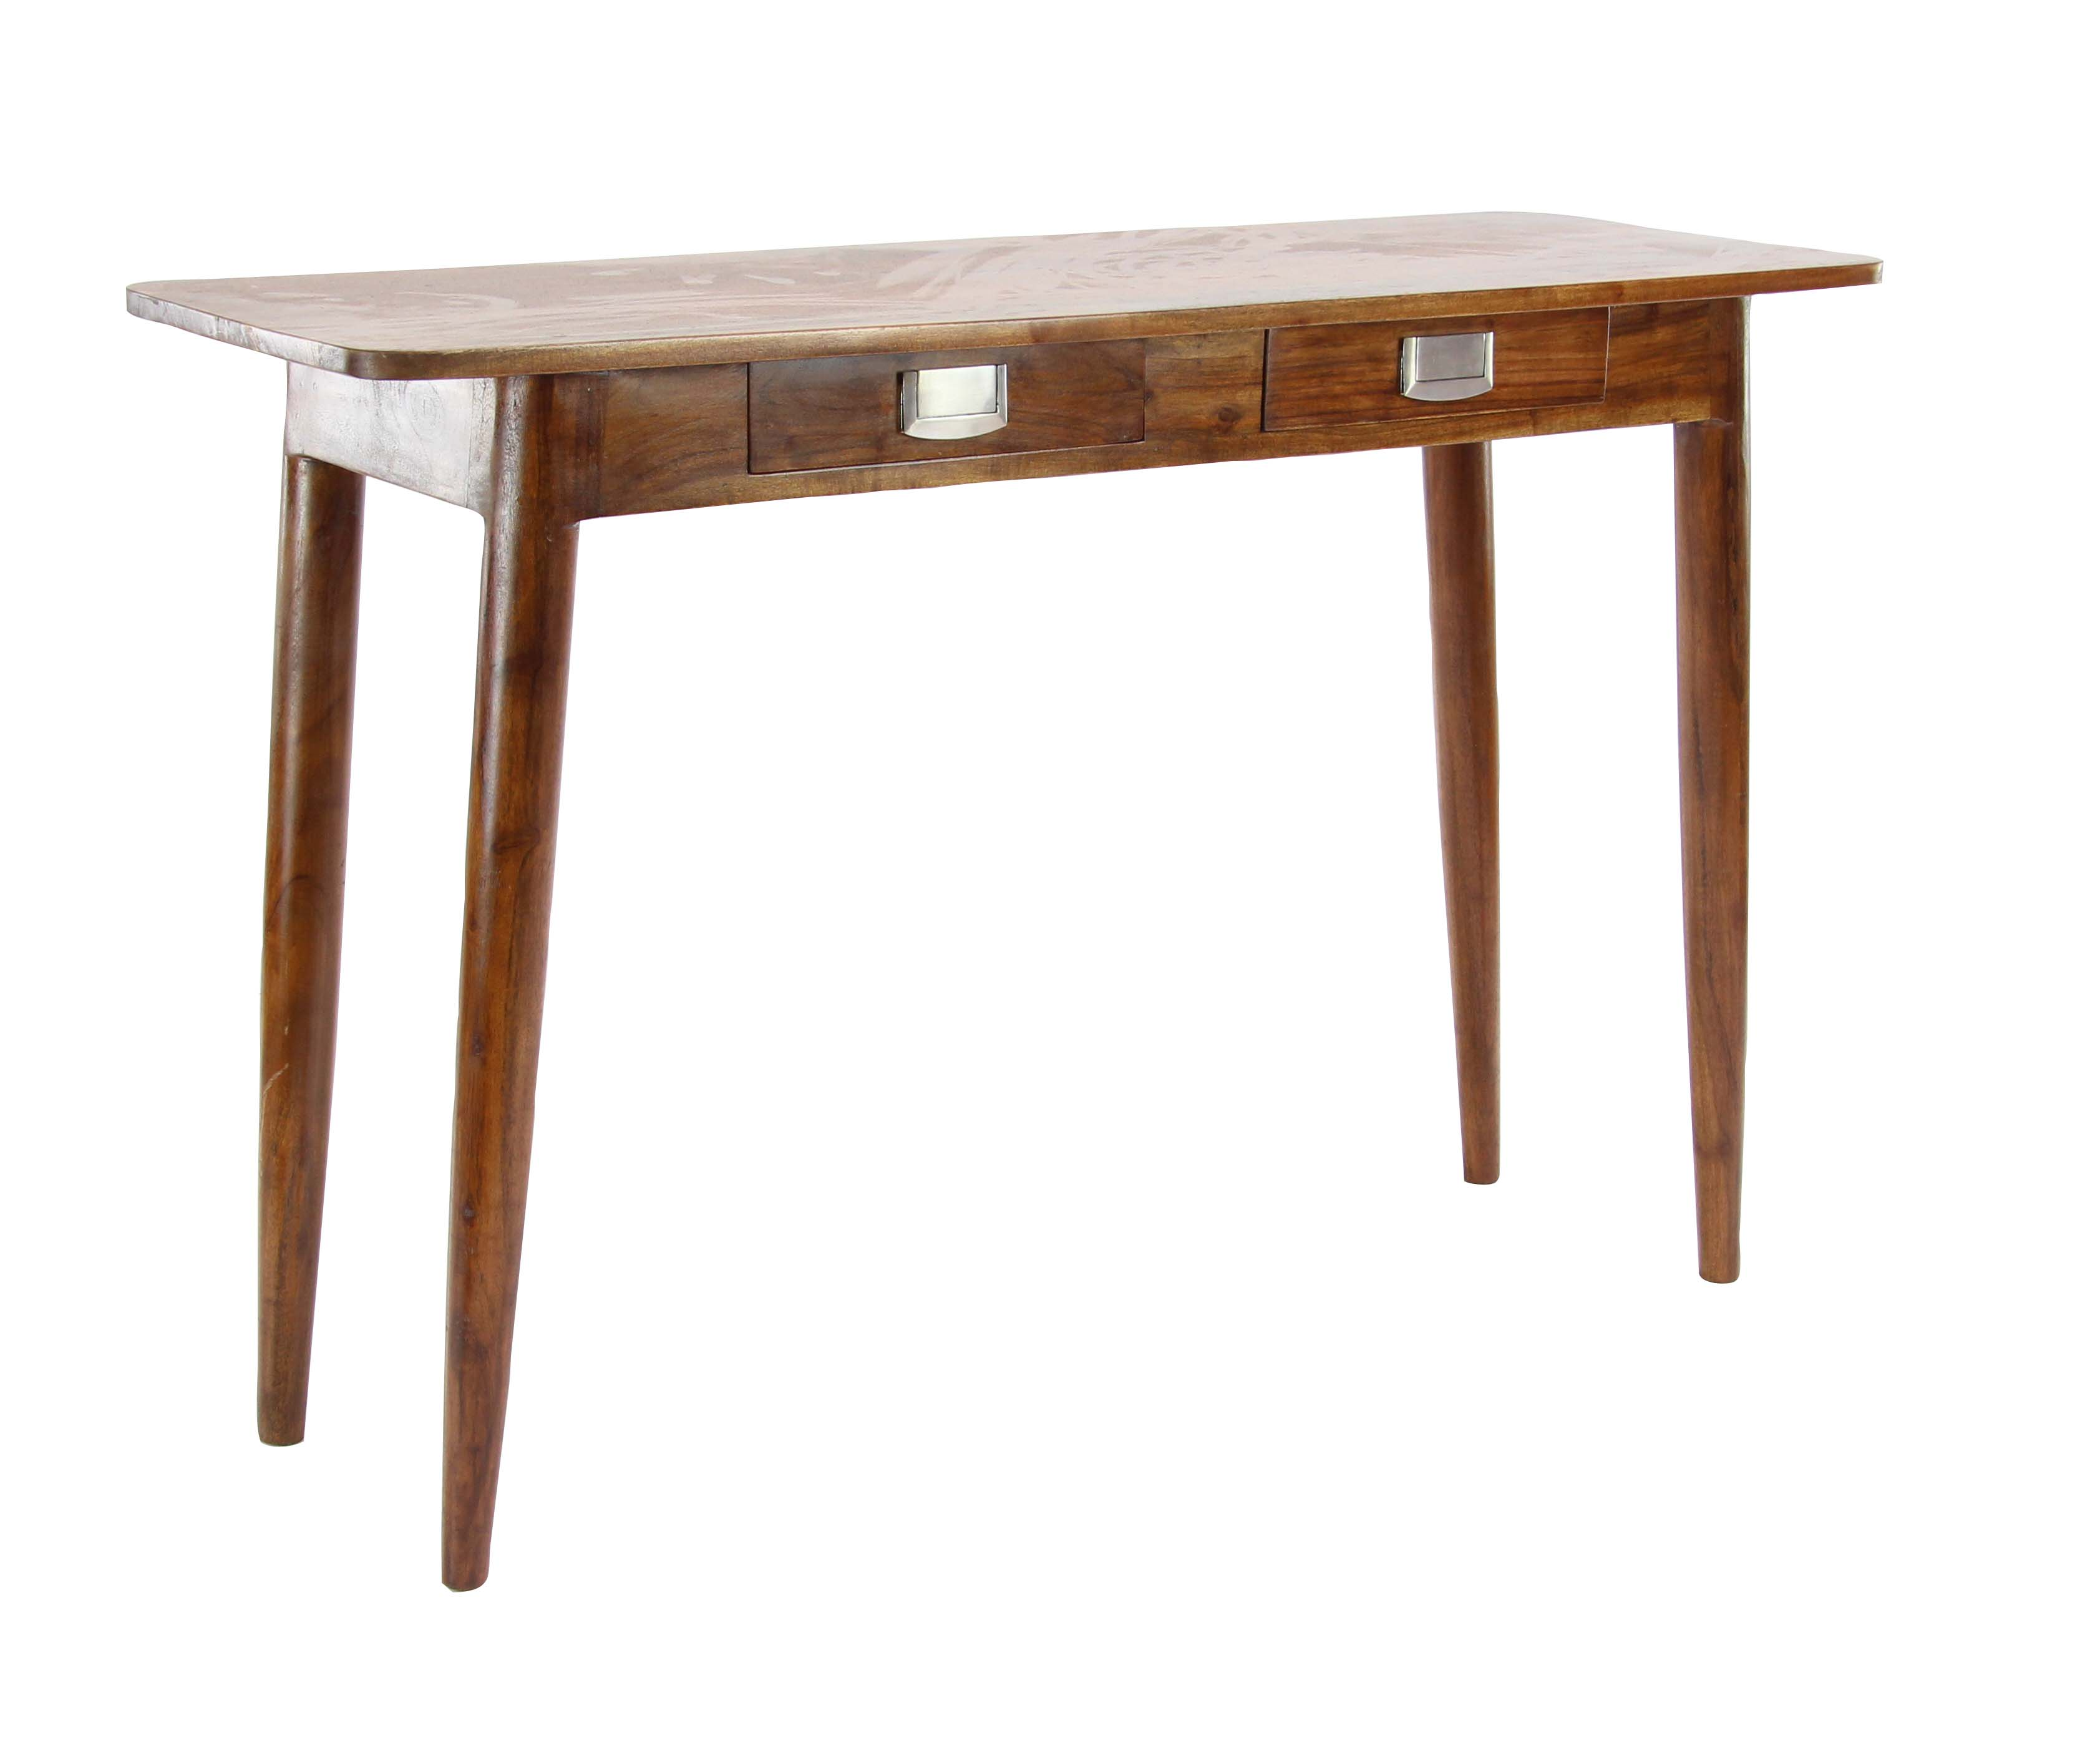 Decmode Modern Kanaloa Wood Stained Brown Console Table With Drawers,  Natural Brown